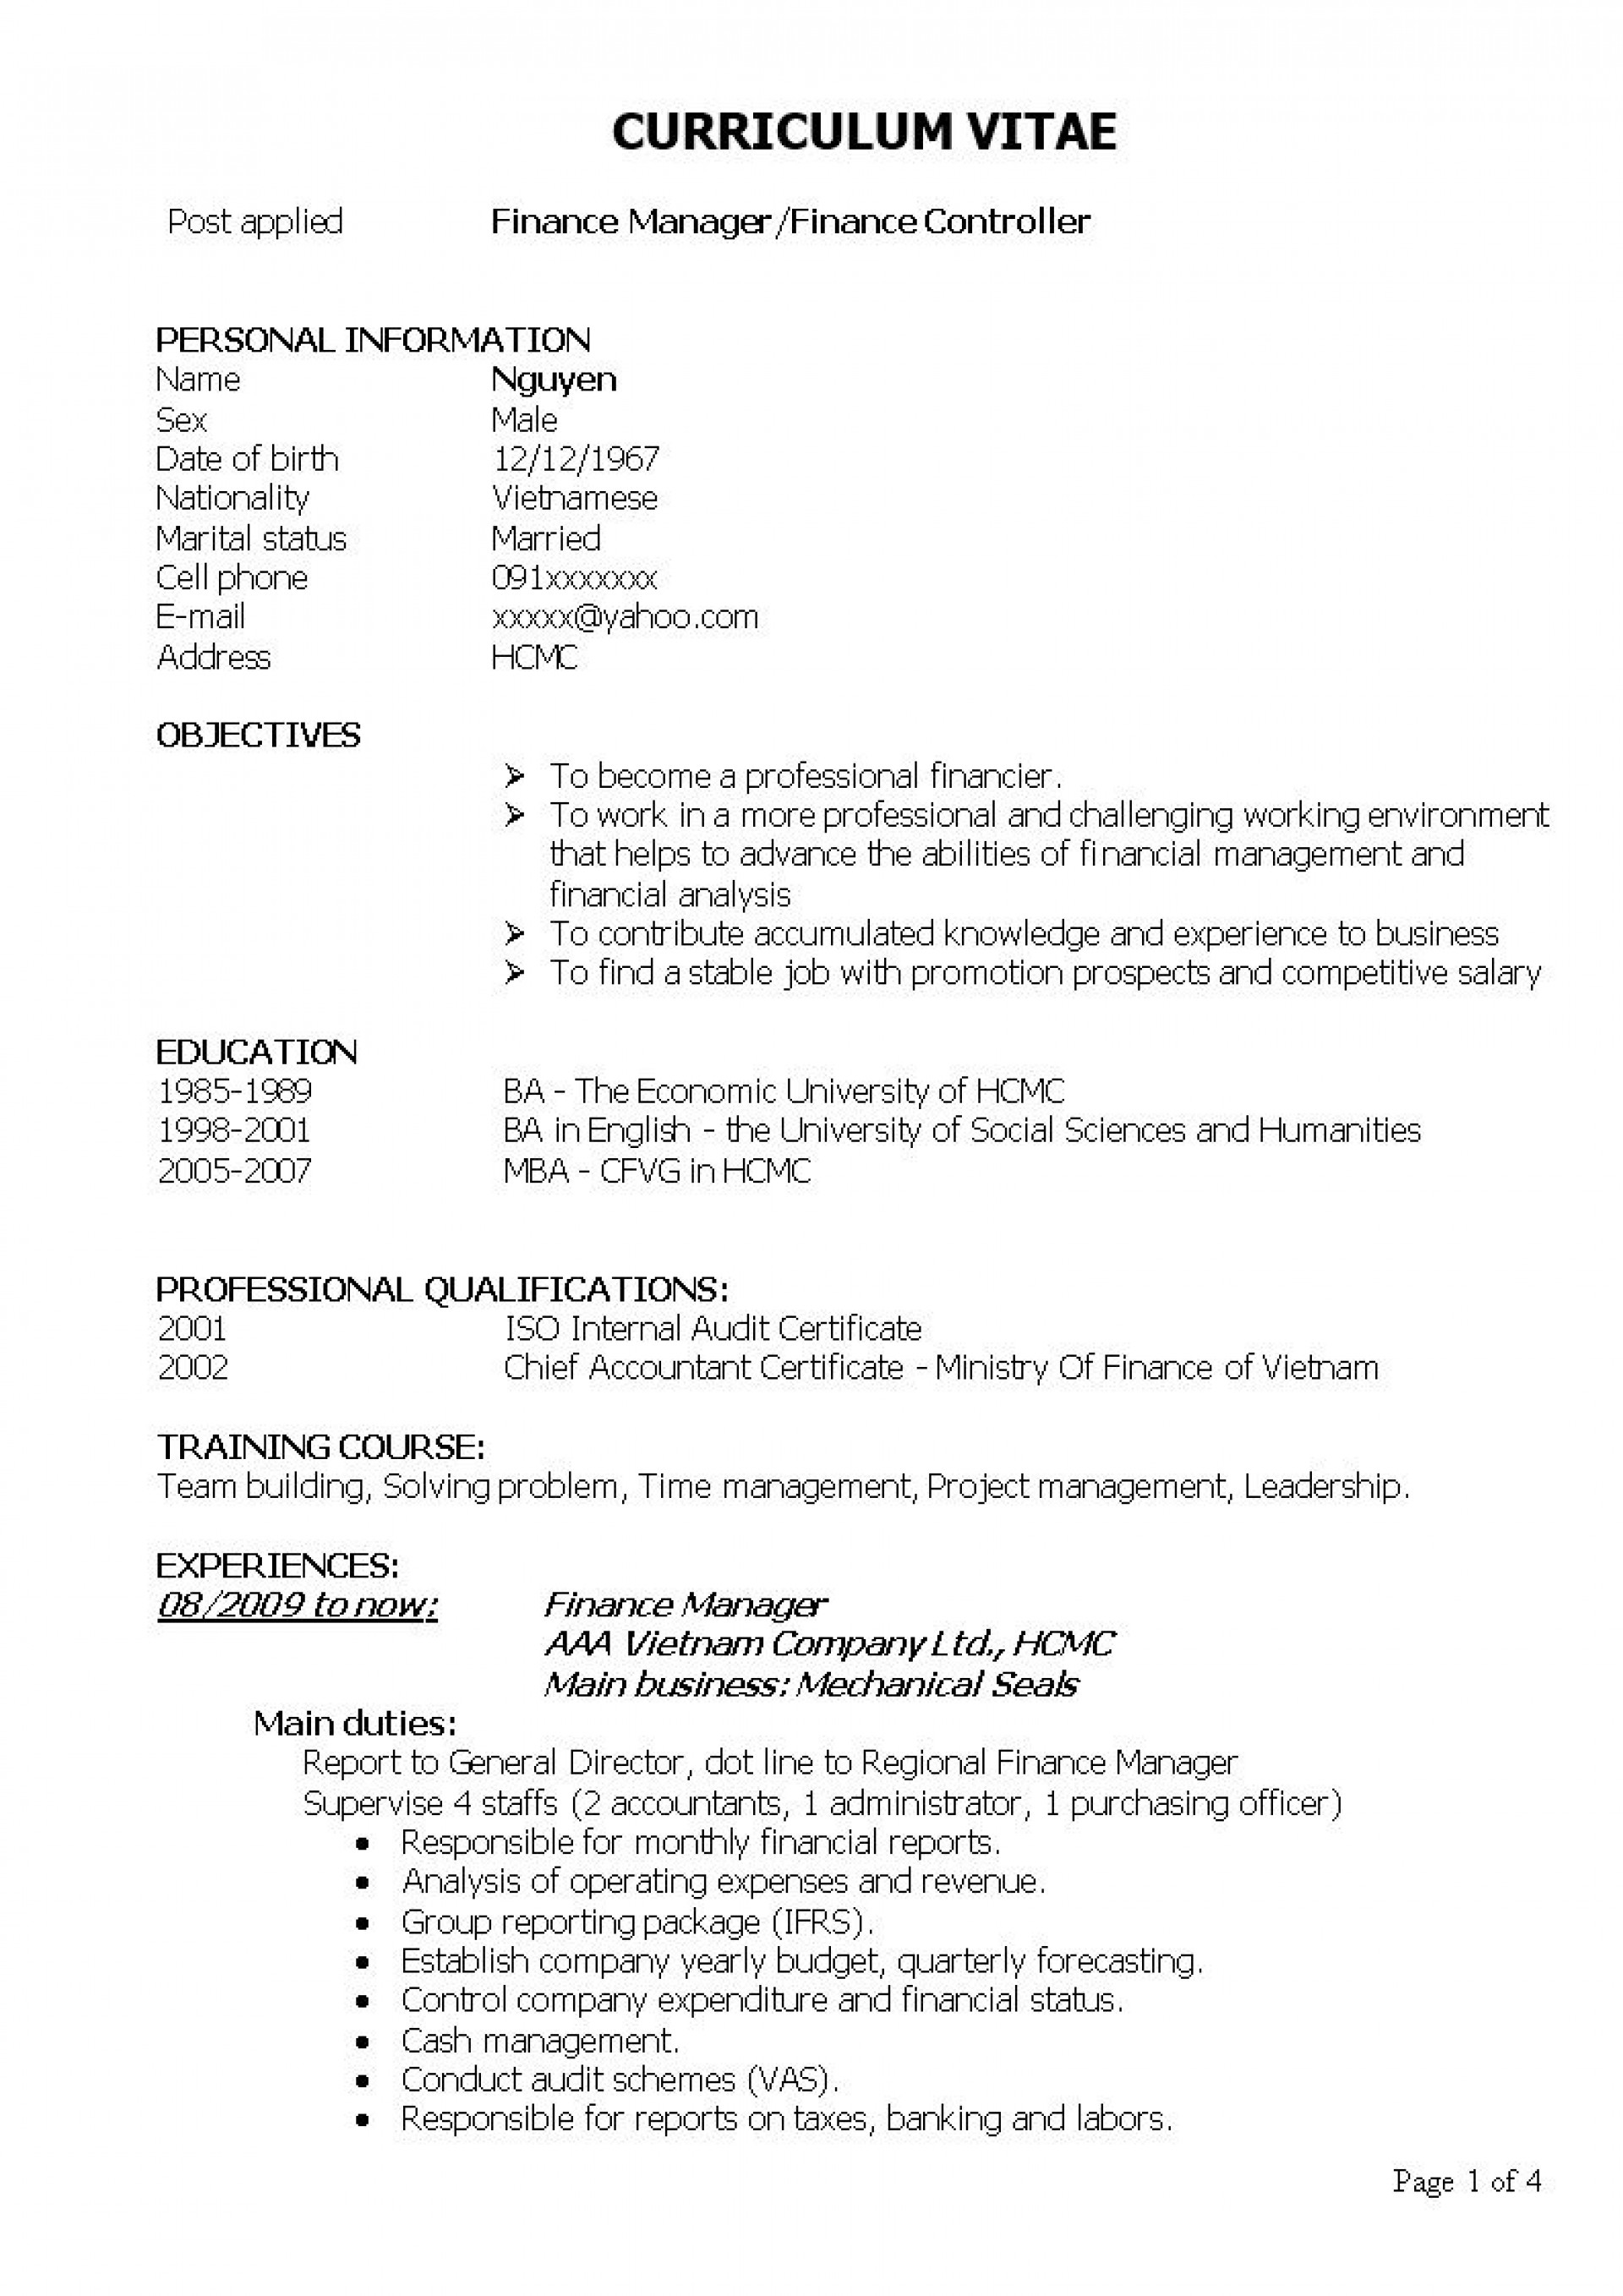 000 Impressive Finance Resume Template Word Image  Financial Analyst Download1920